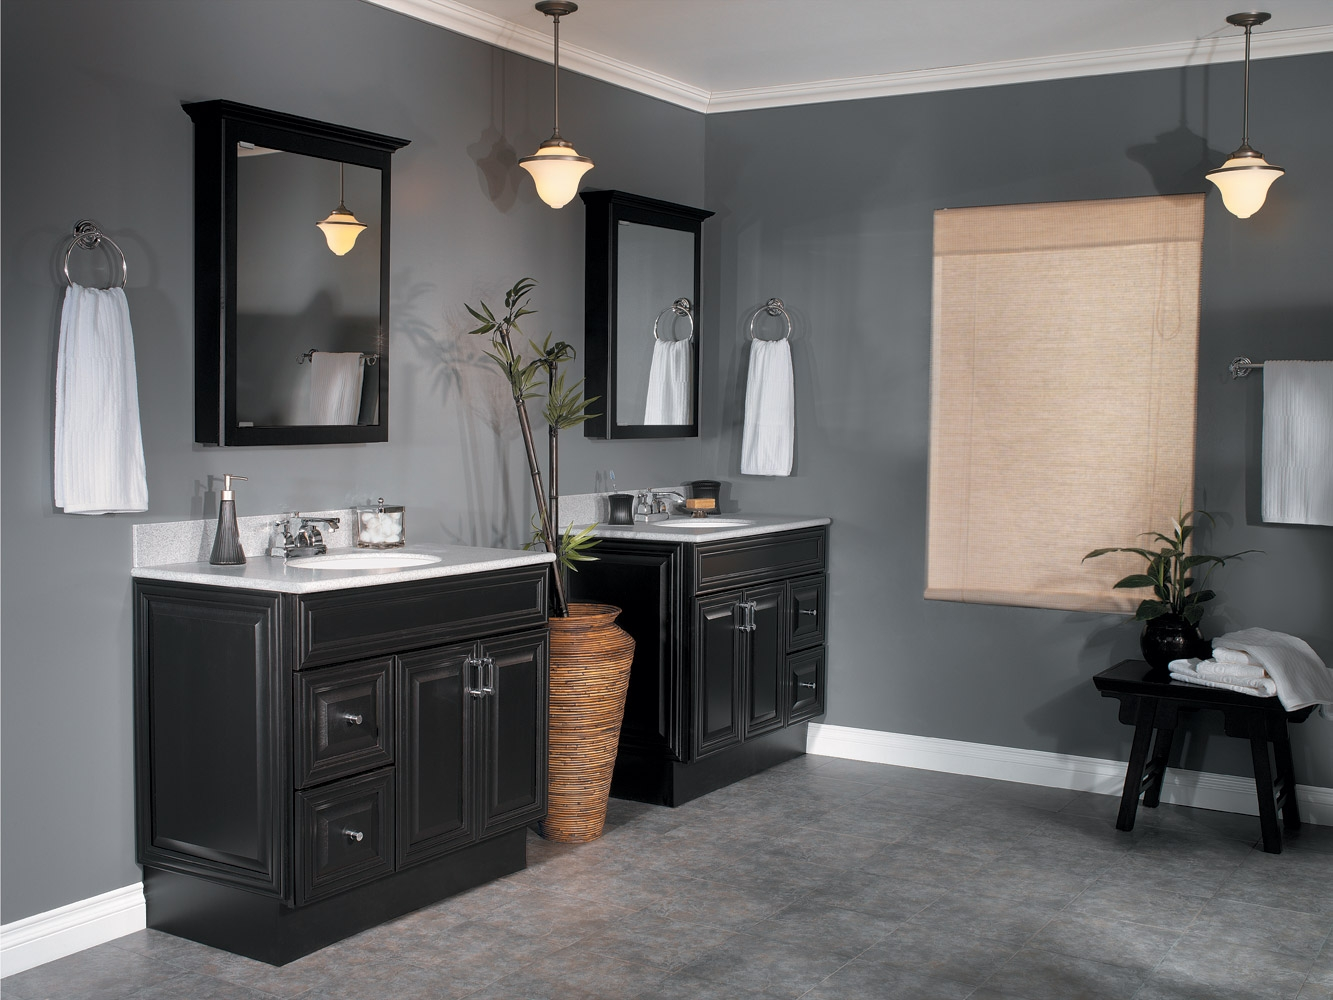 Black Cabinets In Small Bathroom